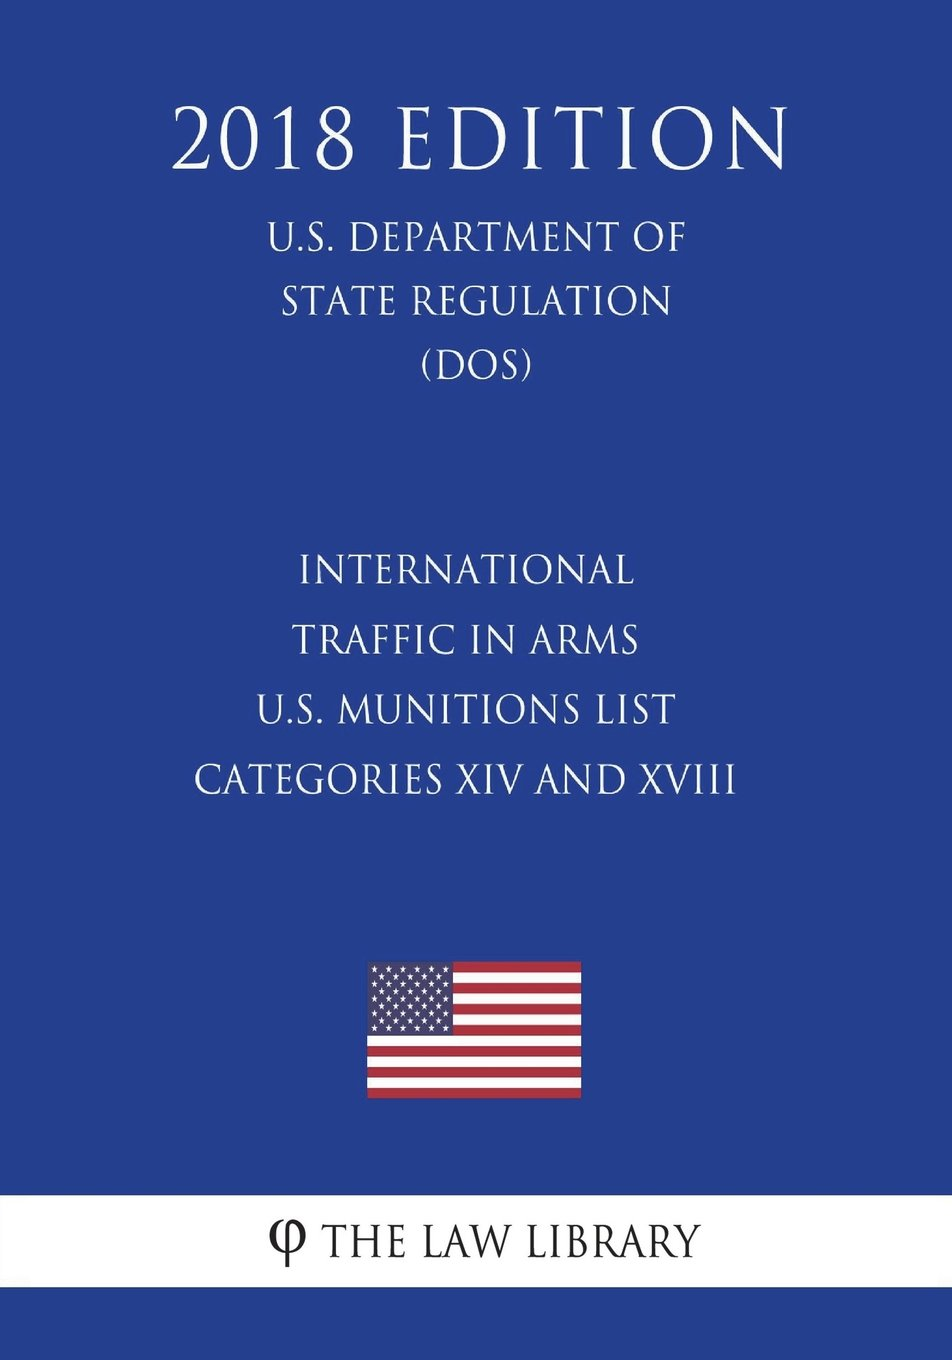 Download International Traffic in Arms - U.S. Munitions List Categories XIV and XVIII (U.S. Department of State Regulation) (DOS) (2018 Edition) pdf epub